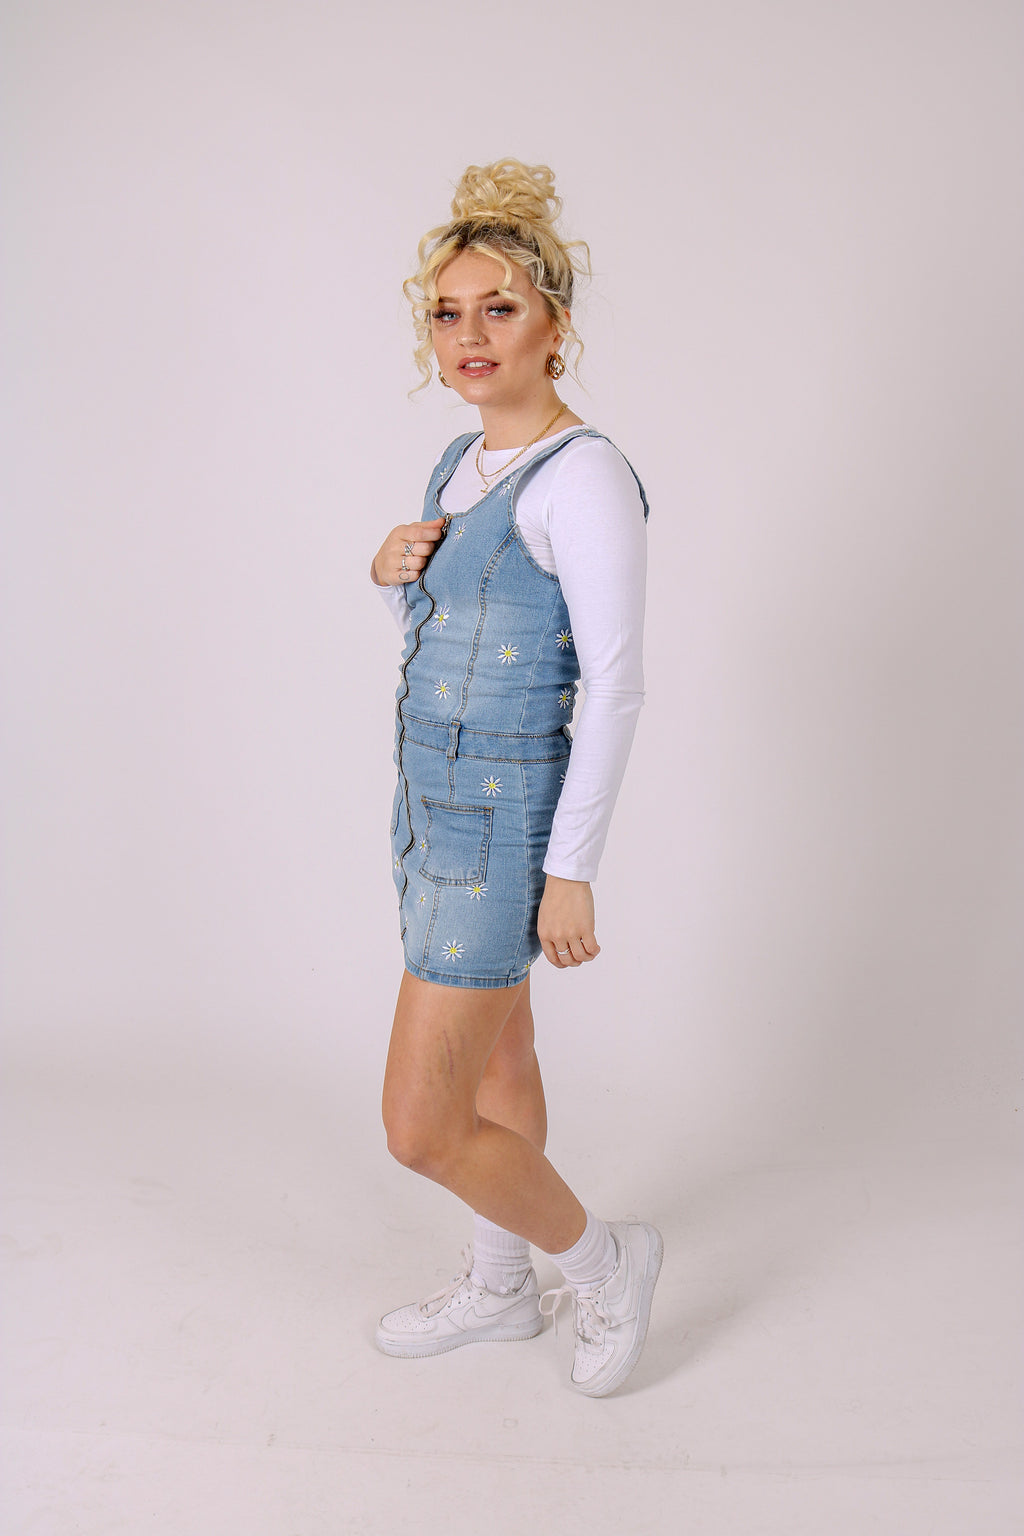 Oh My Ditzyyy 'Daisy Embroidery Denim Dress'